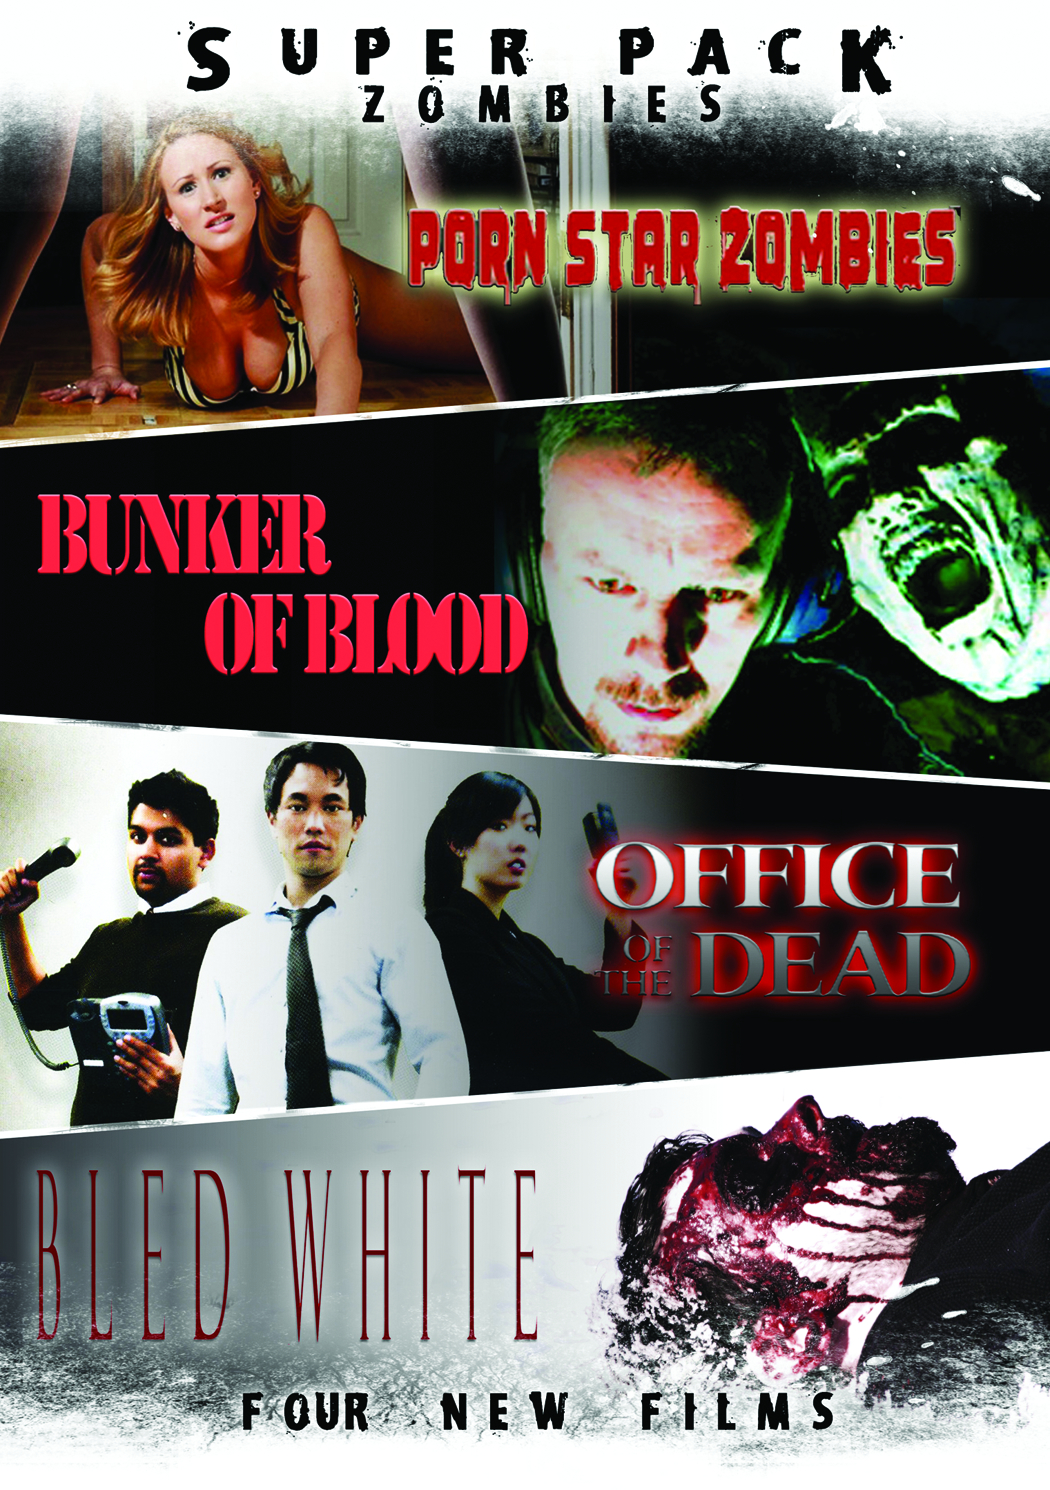 SUPER PACK ZOMBIES DVD